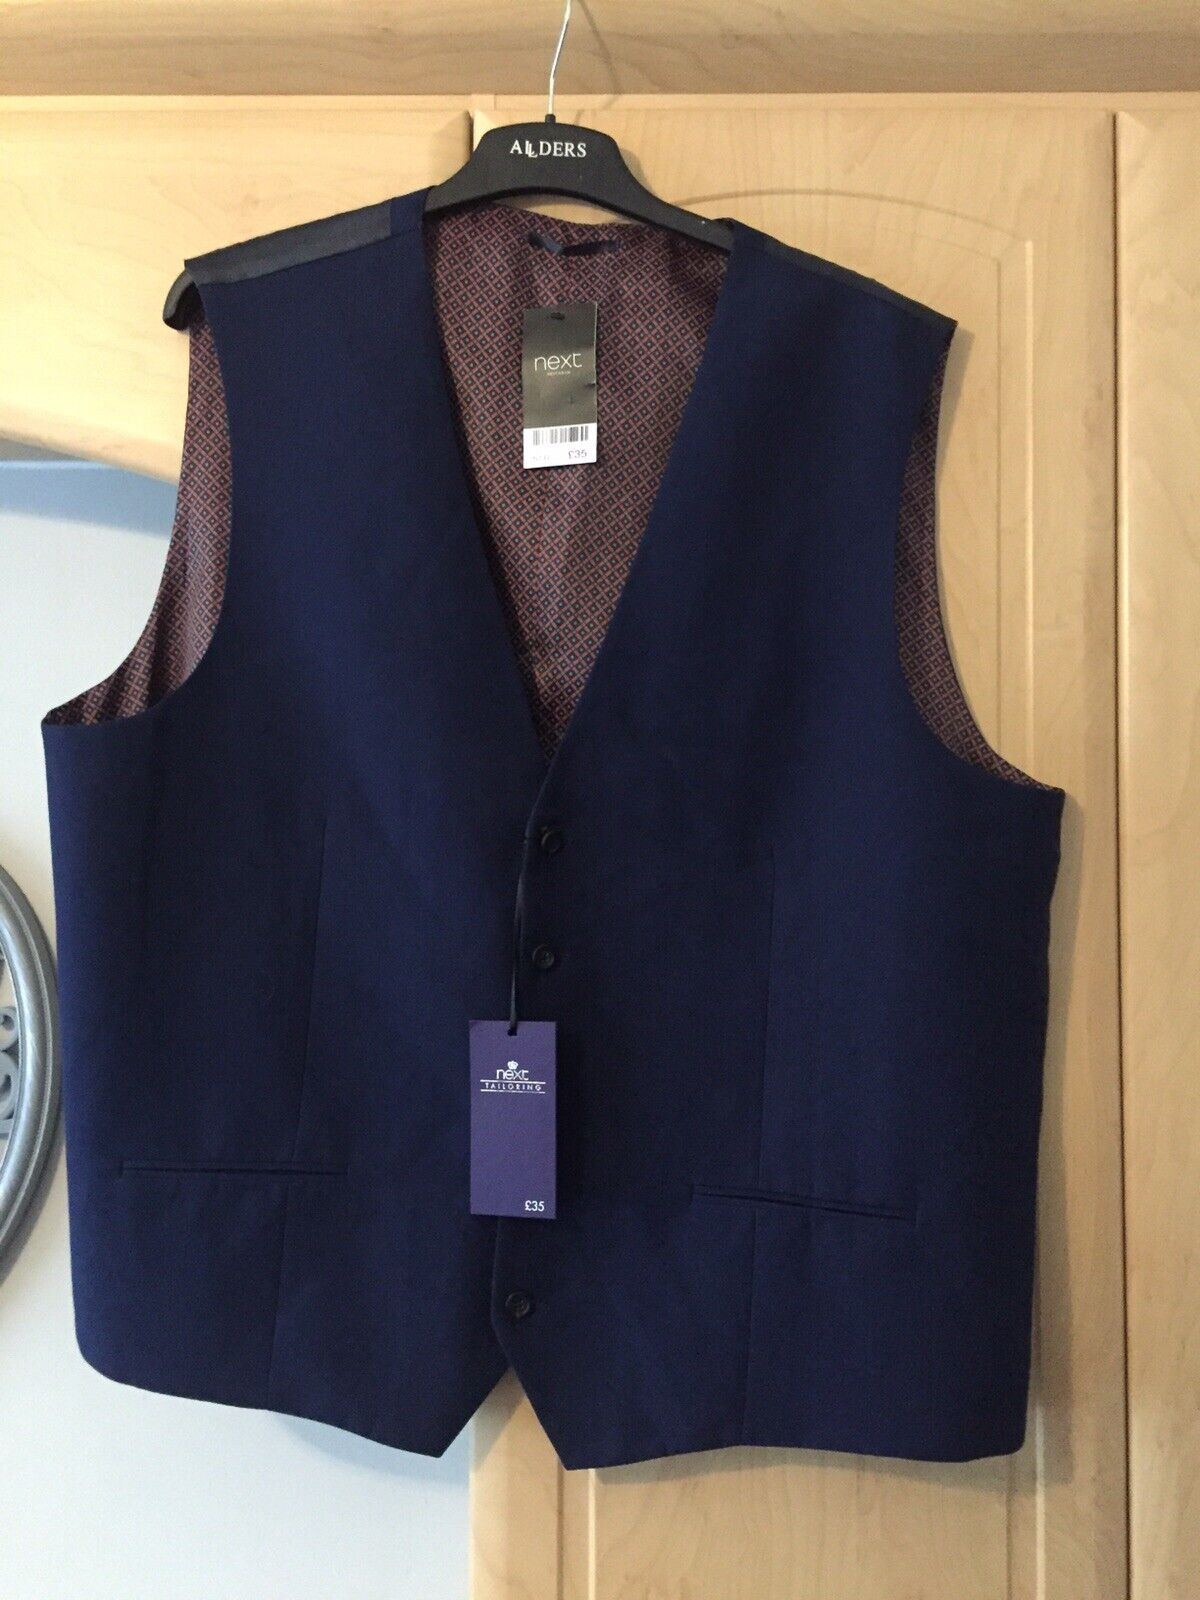 Mens Next Blue Waistcoat size 52 reg . New with tags..*******